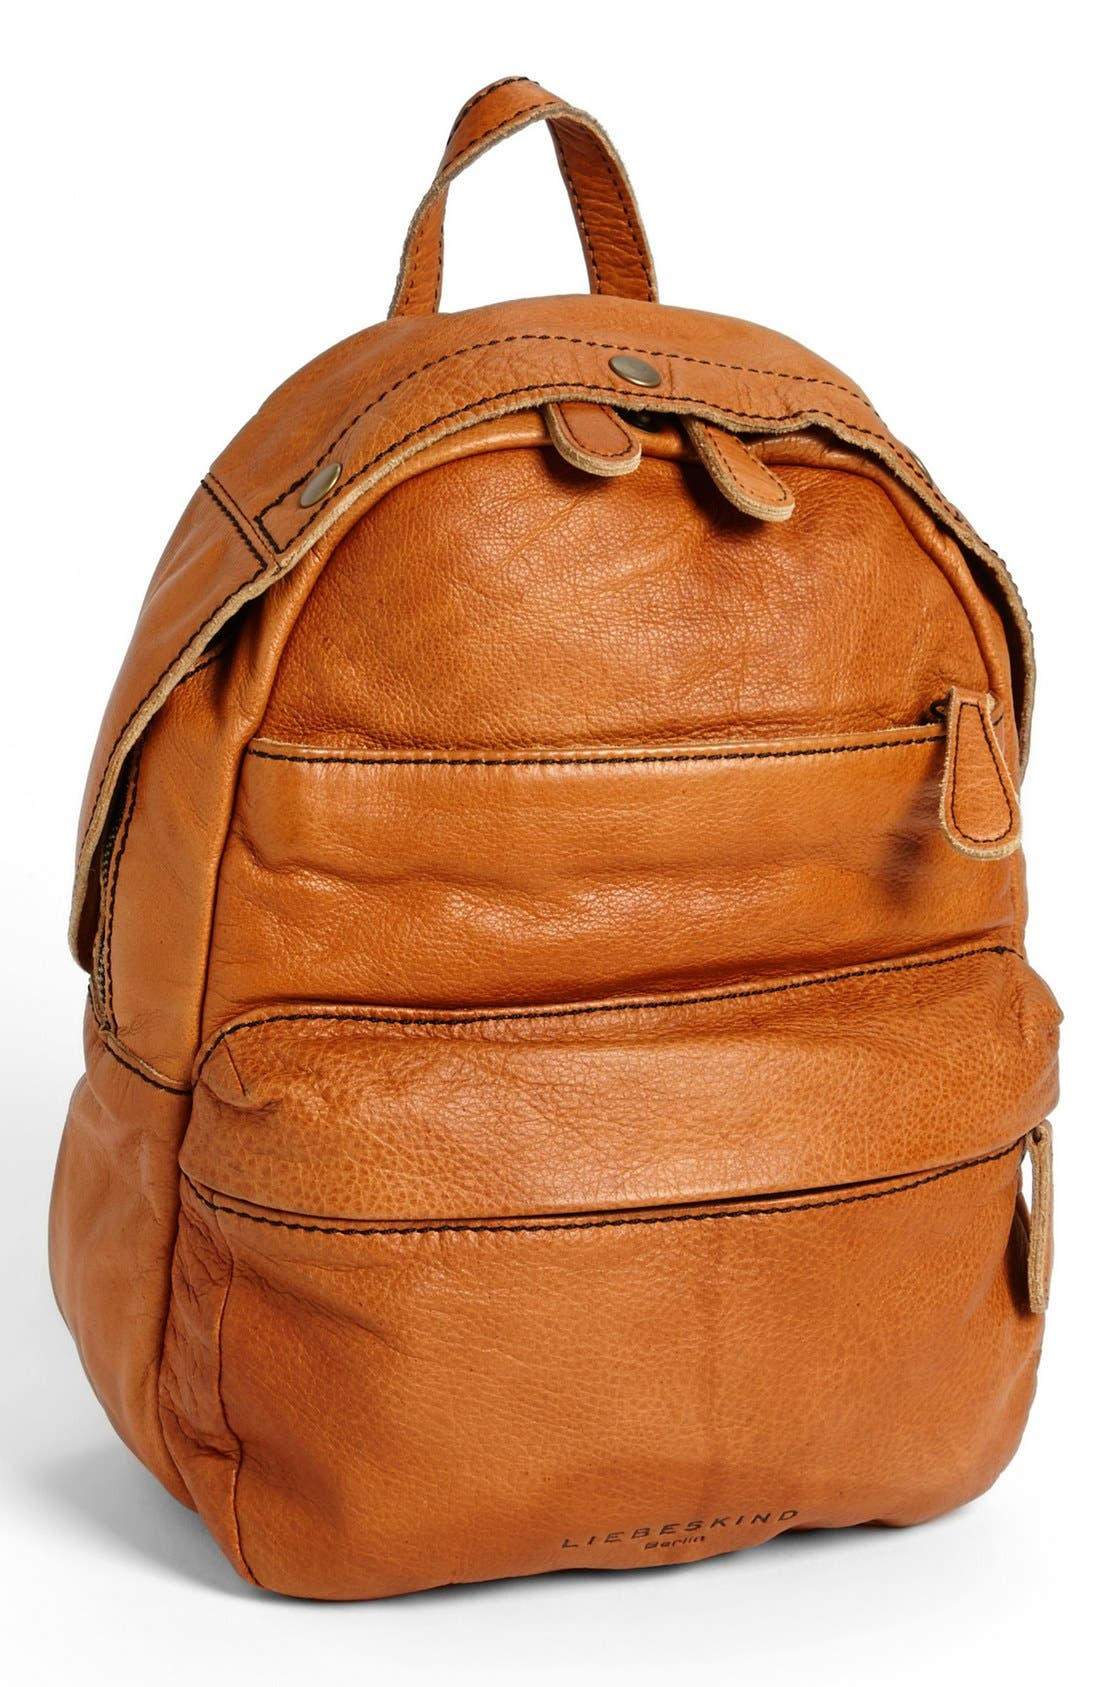 LIEBESKIND,                             'Lora' Leather Backpack,                             Main thumbnail 1, color,                             250